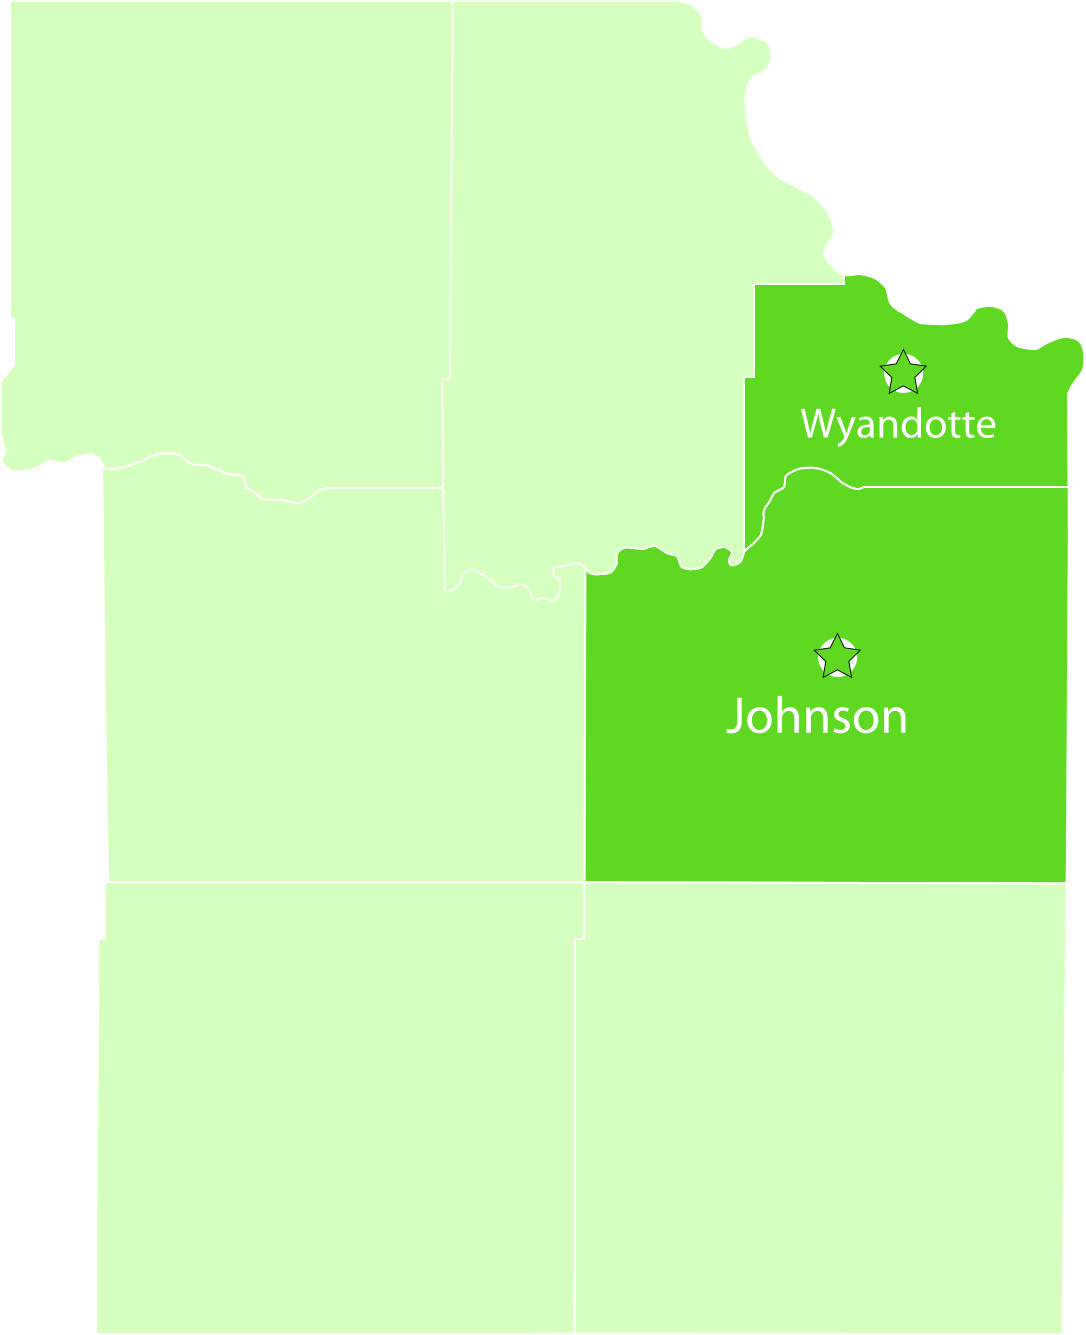 Johnson and Wyandotte County